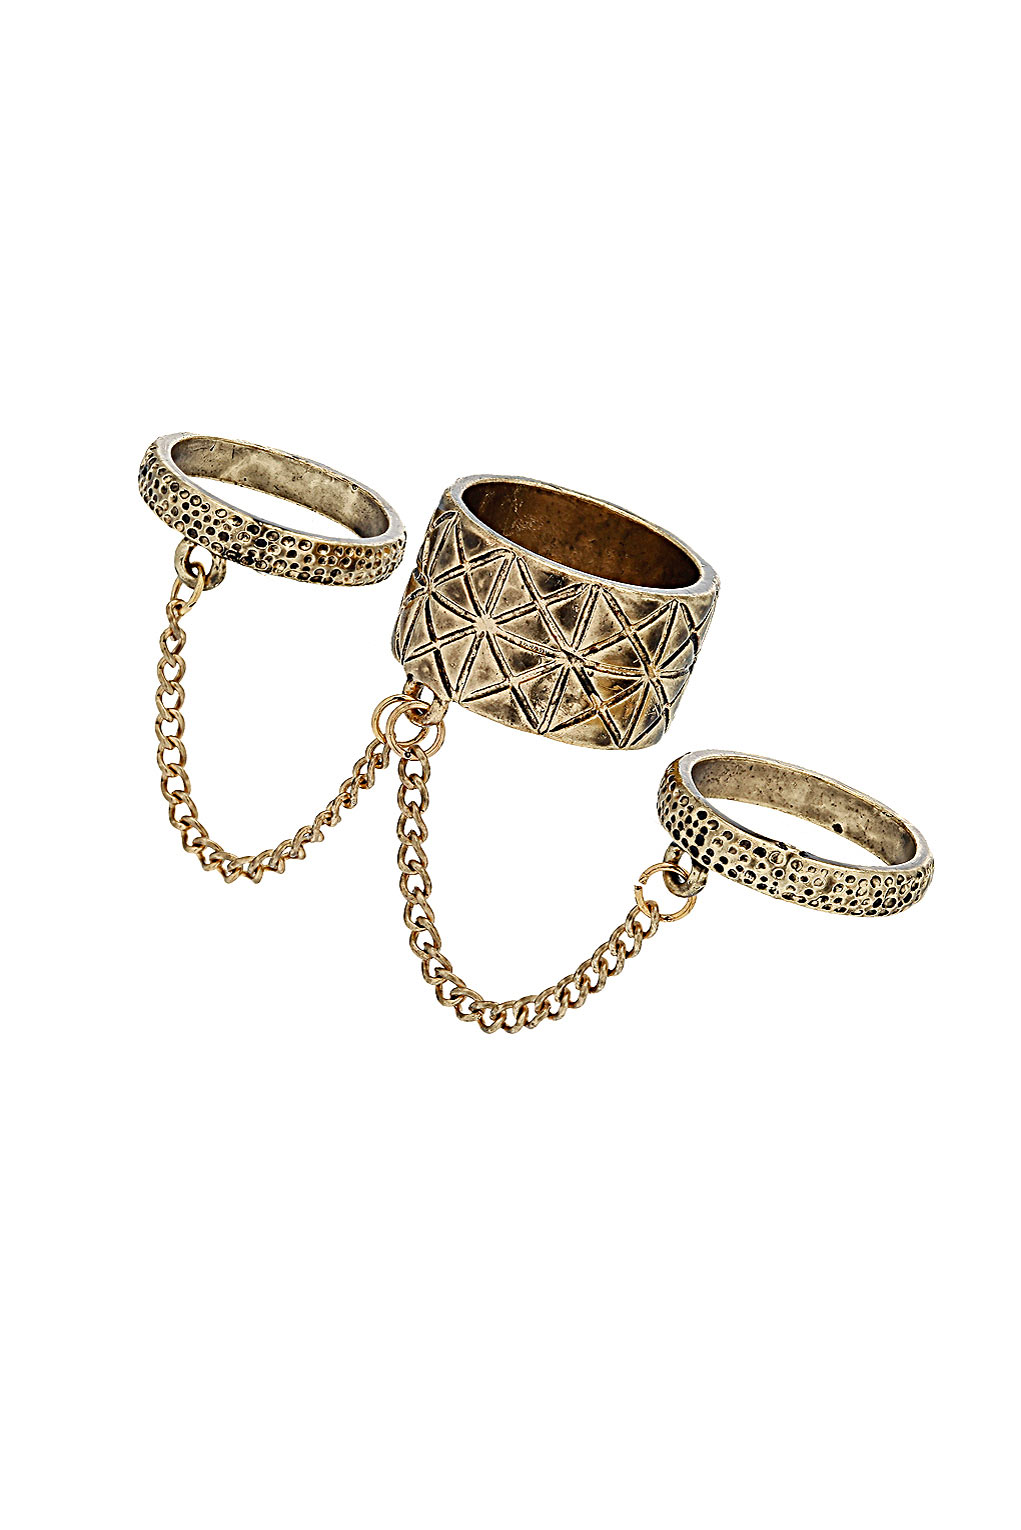 Topshop - 3 Band Link Chain Rings - £8.50